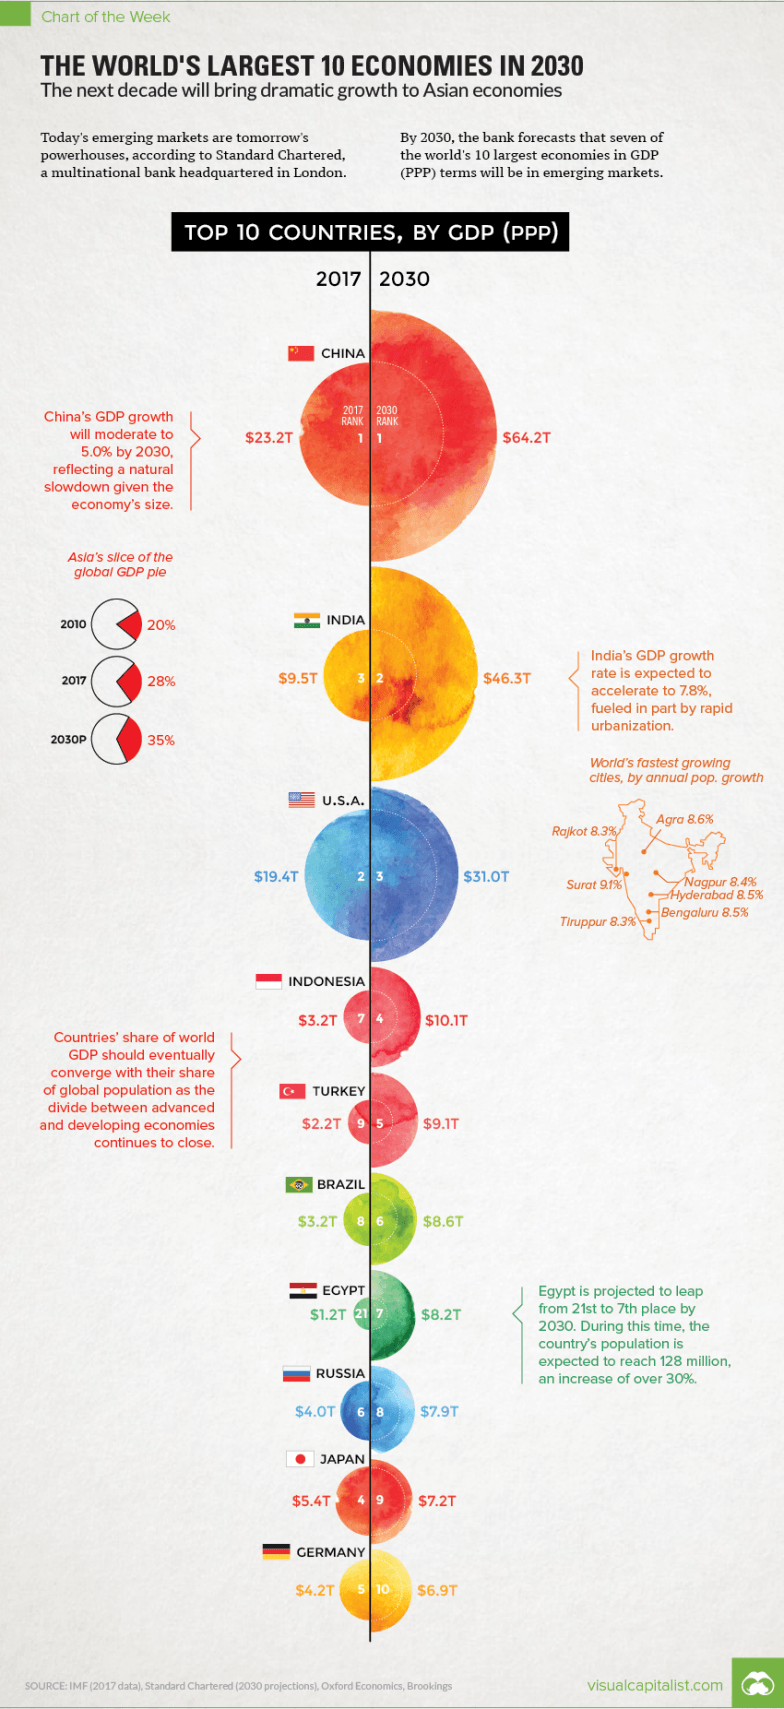 Charting the World's Biggest Economies in 2030